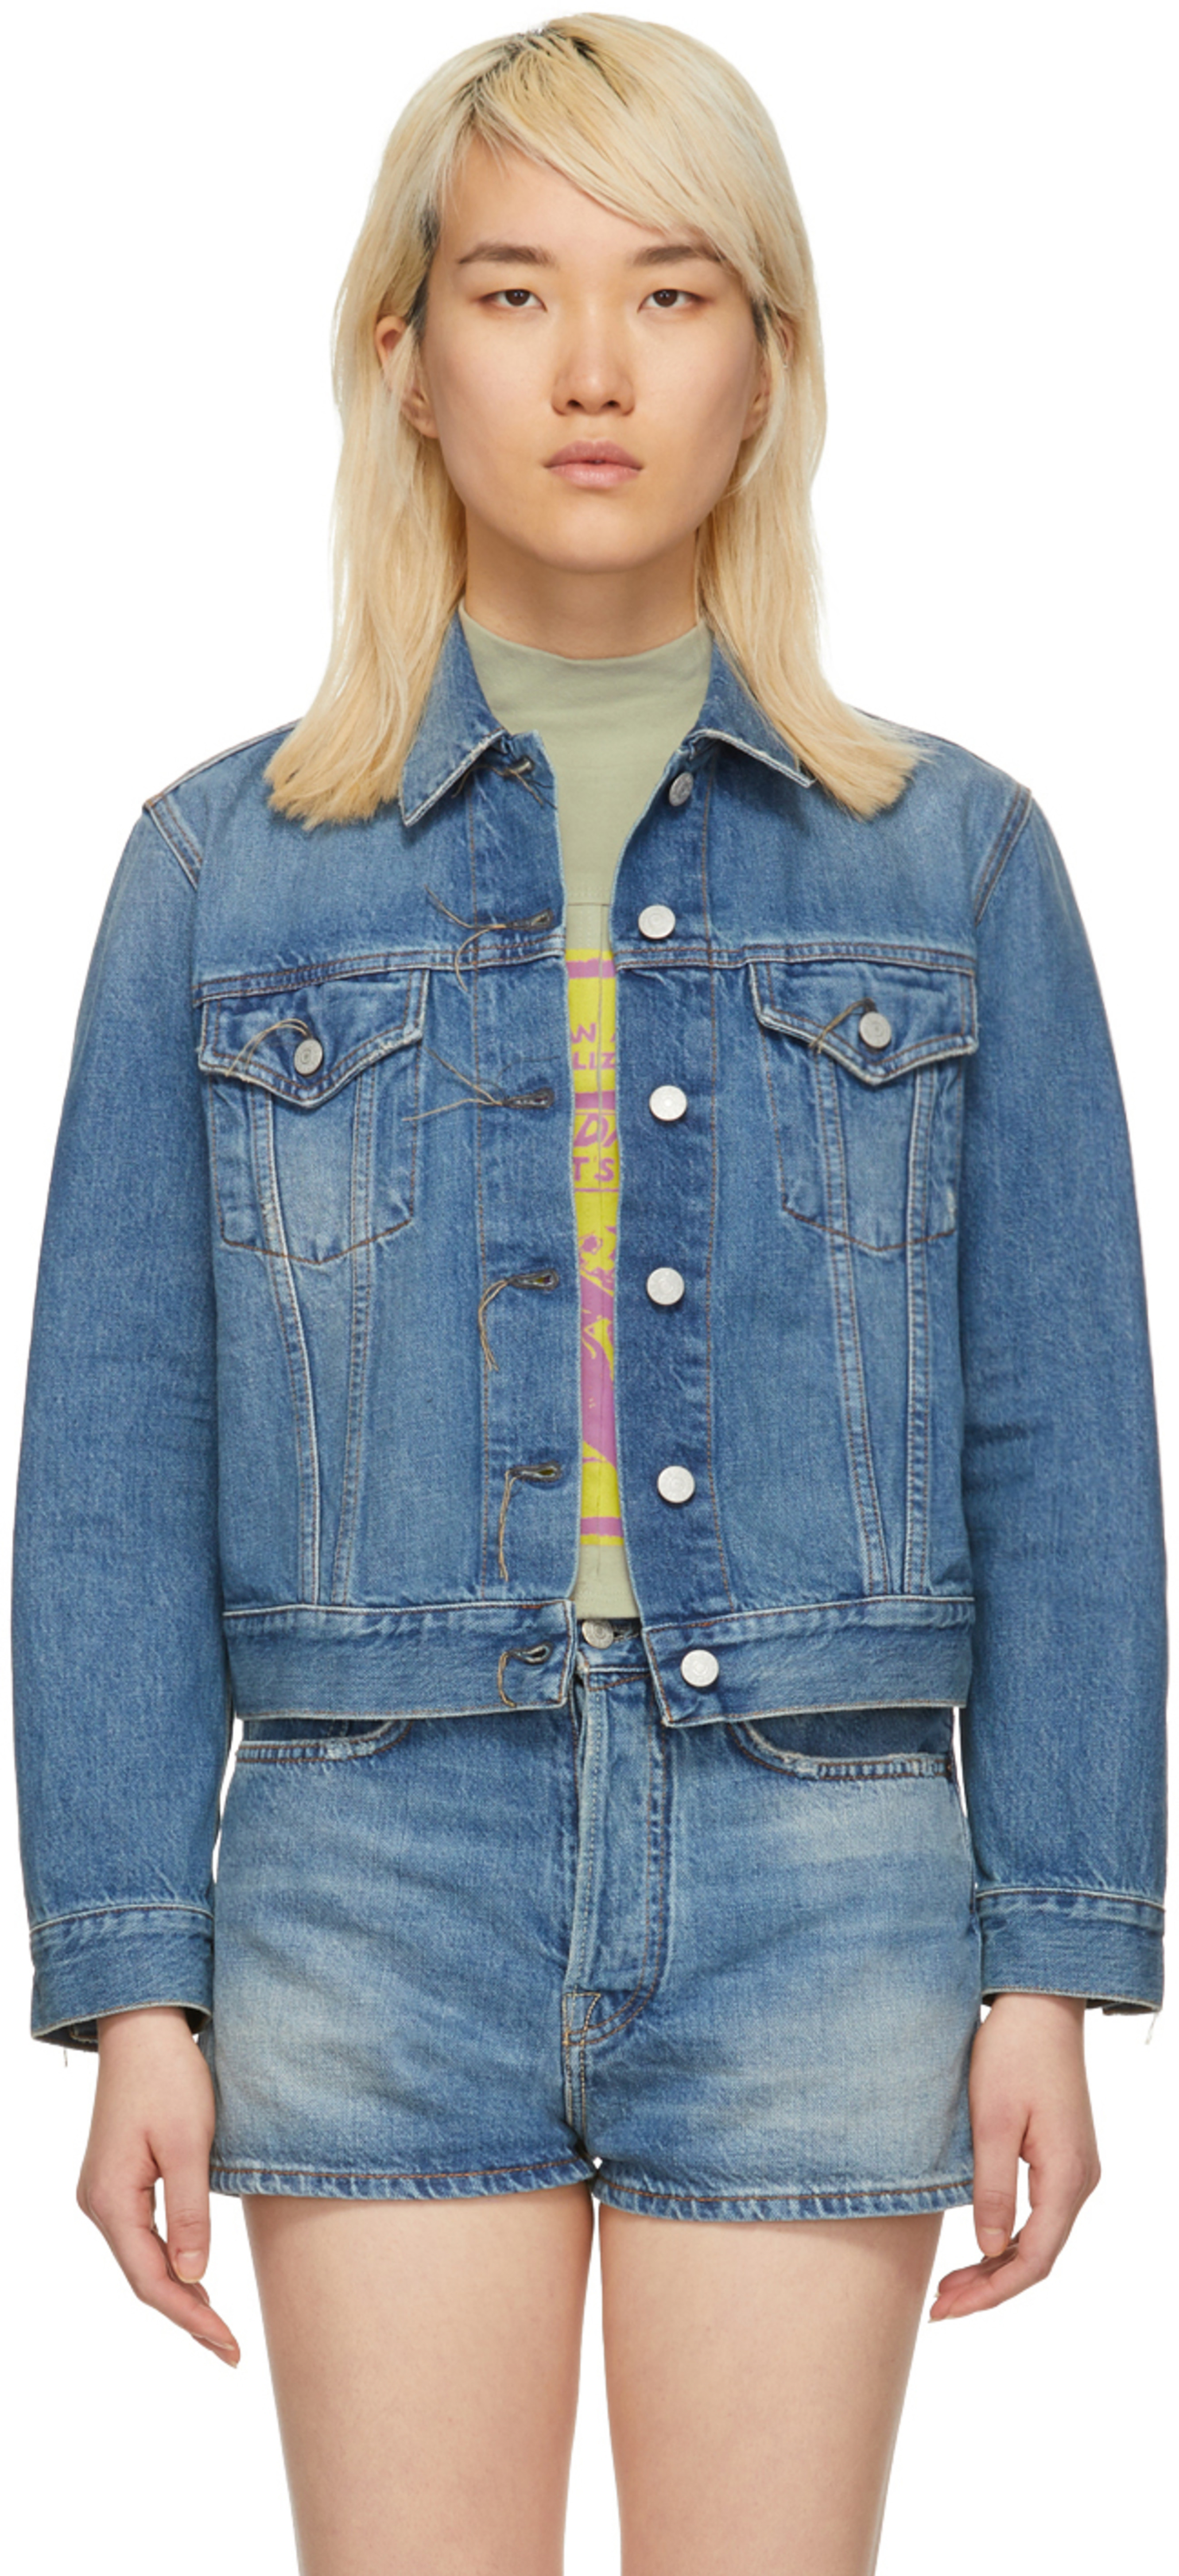 3156925d6b Acne Studios for Women SS19 Collection